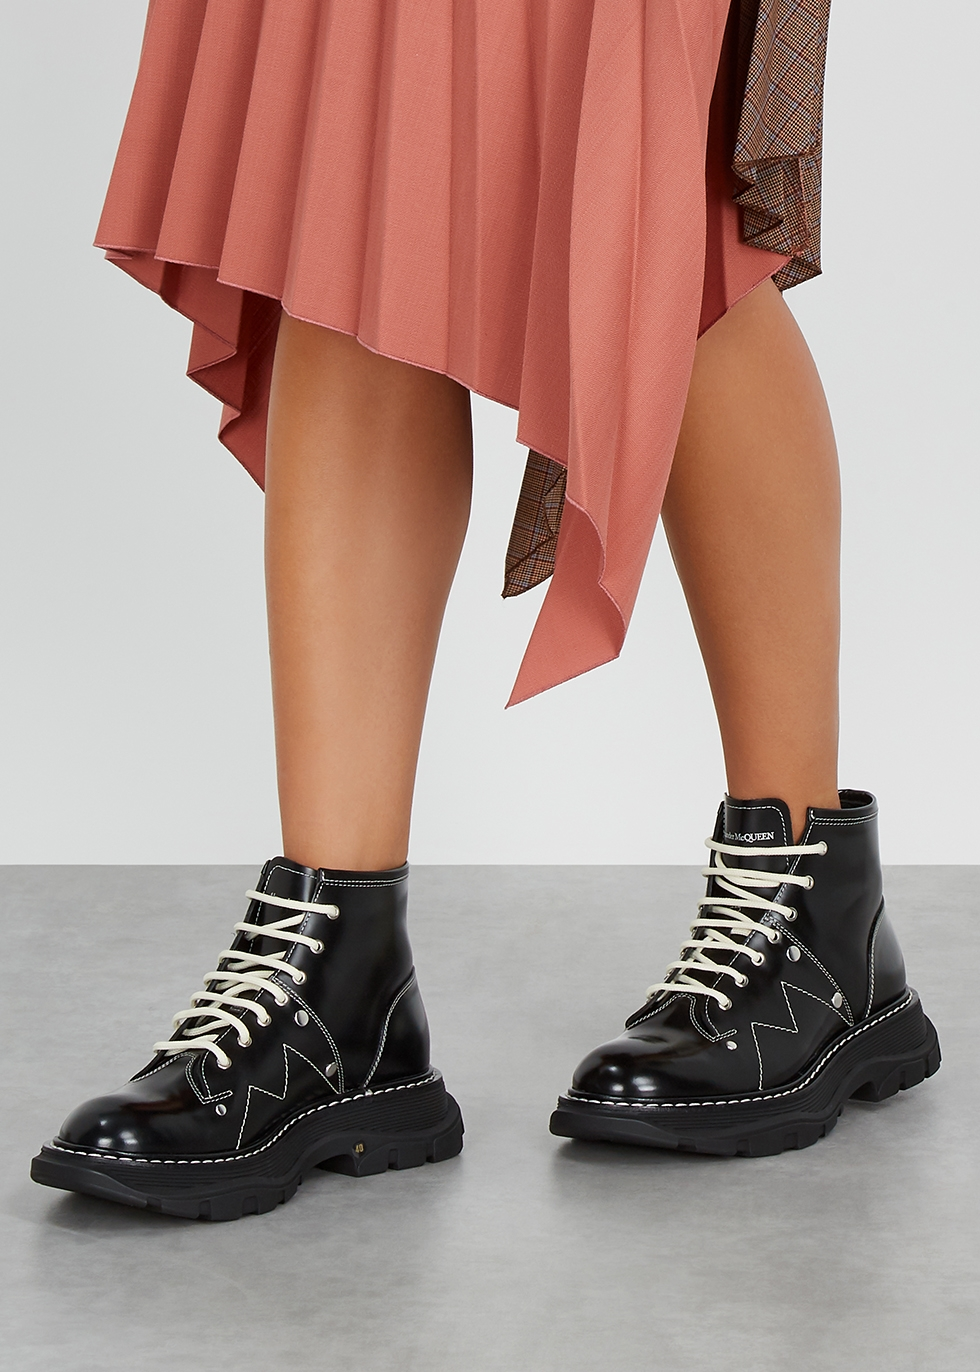 Alexander McQueen Black leather ankle